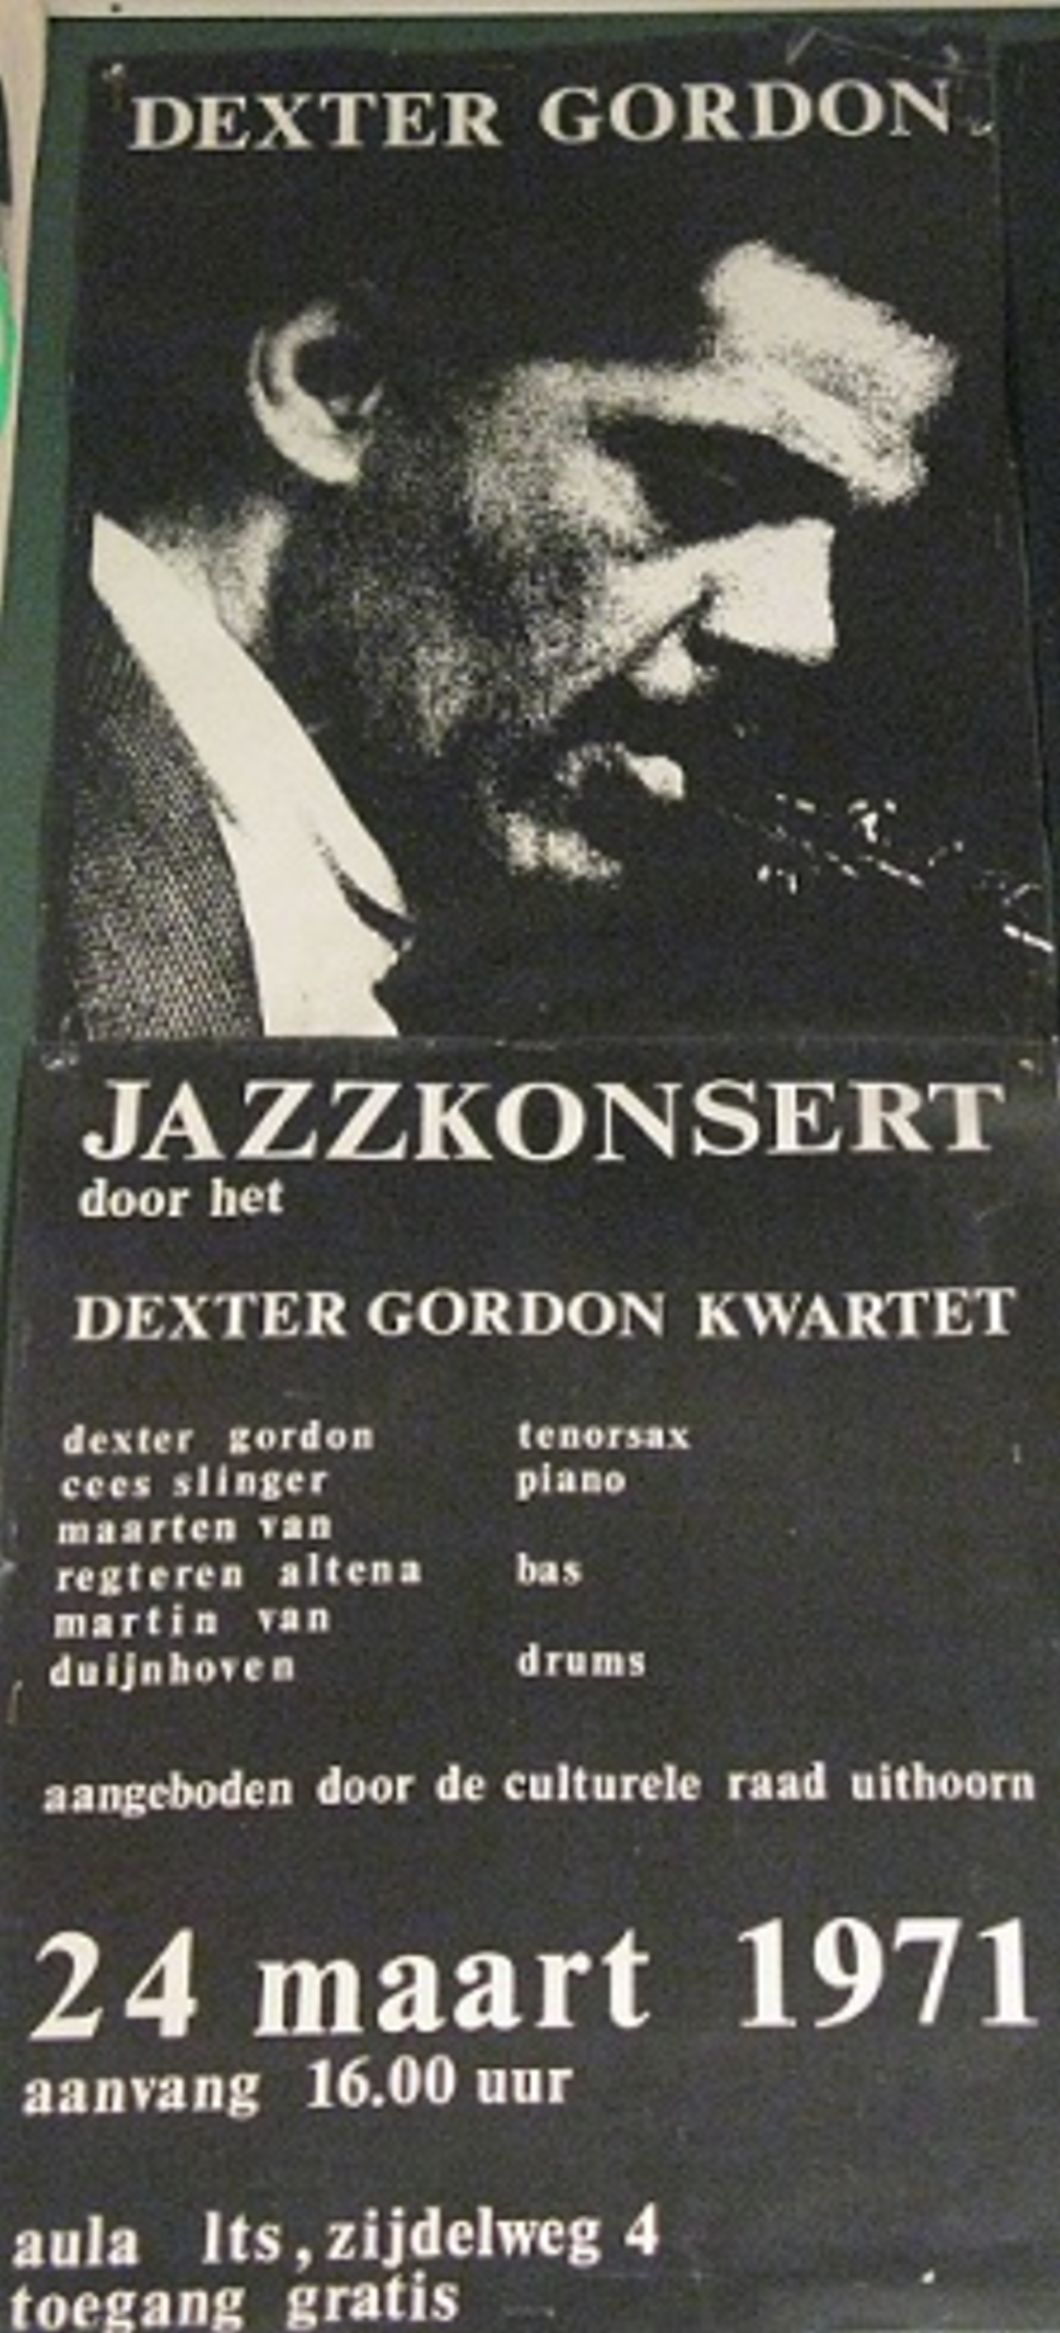 Dexter Gordon 1971